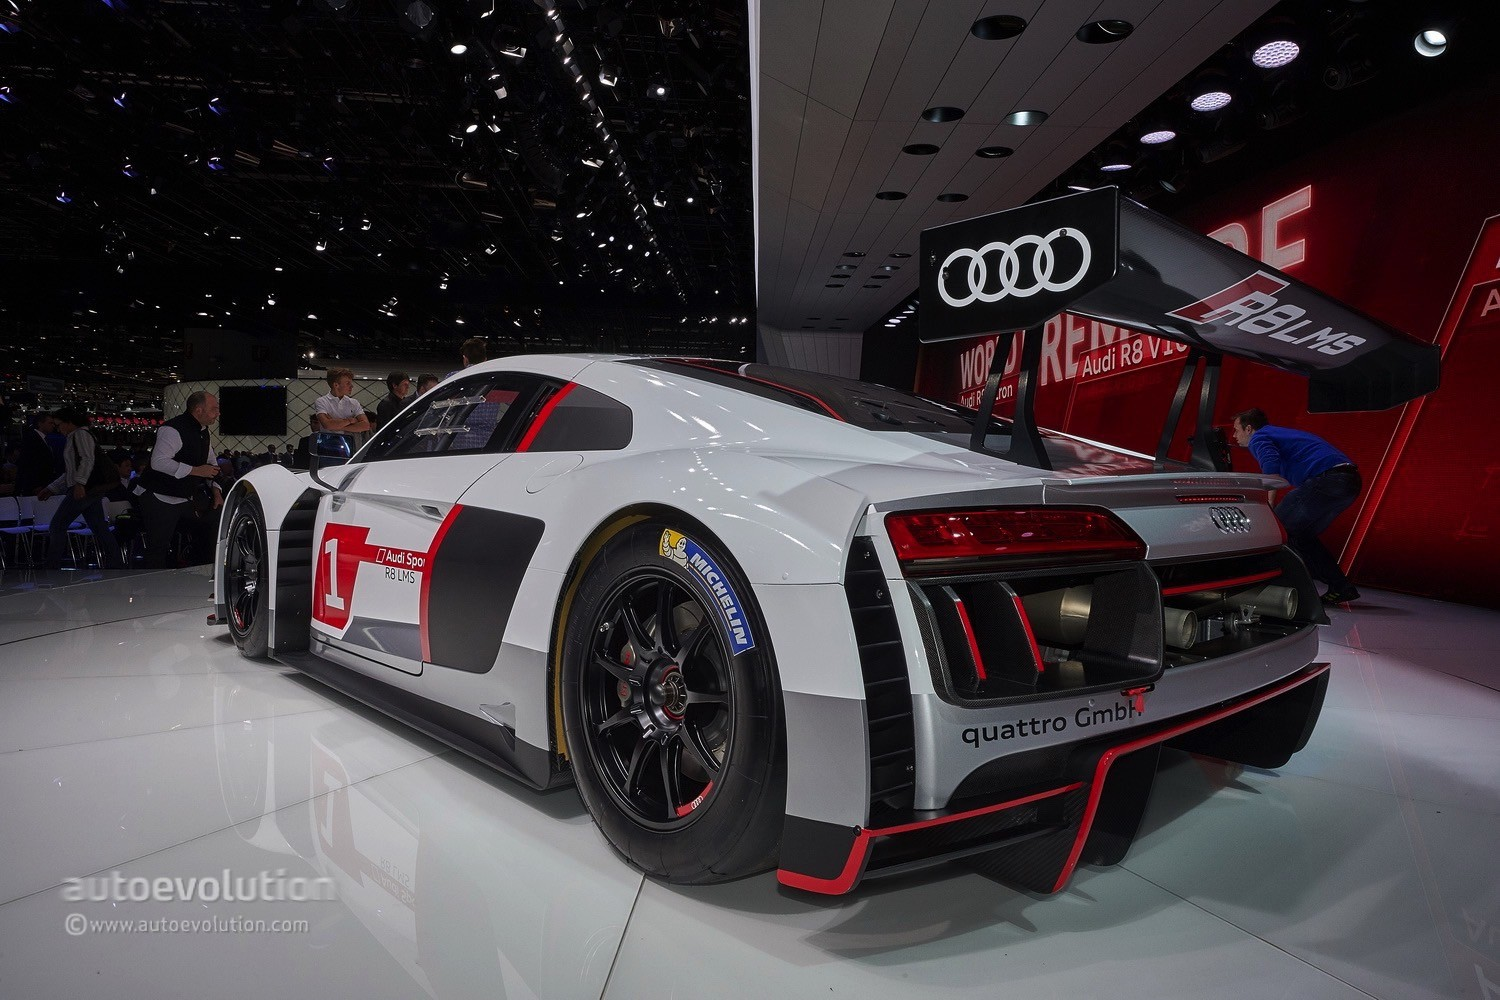 Audi R Lms Races Into Gt With Stiffer Chassis And Extra Safety Features Live Photos on Audi Rs8